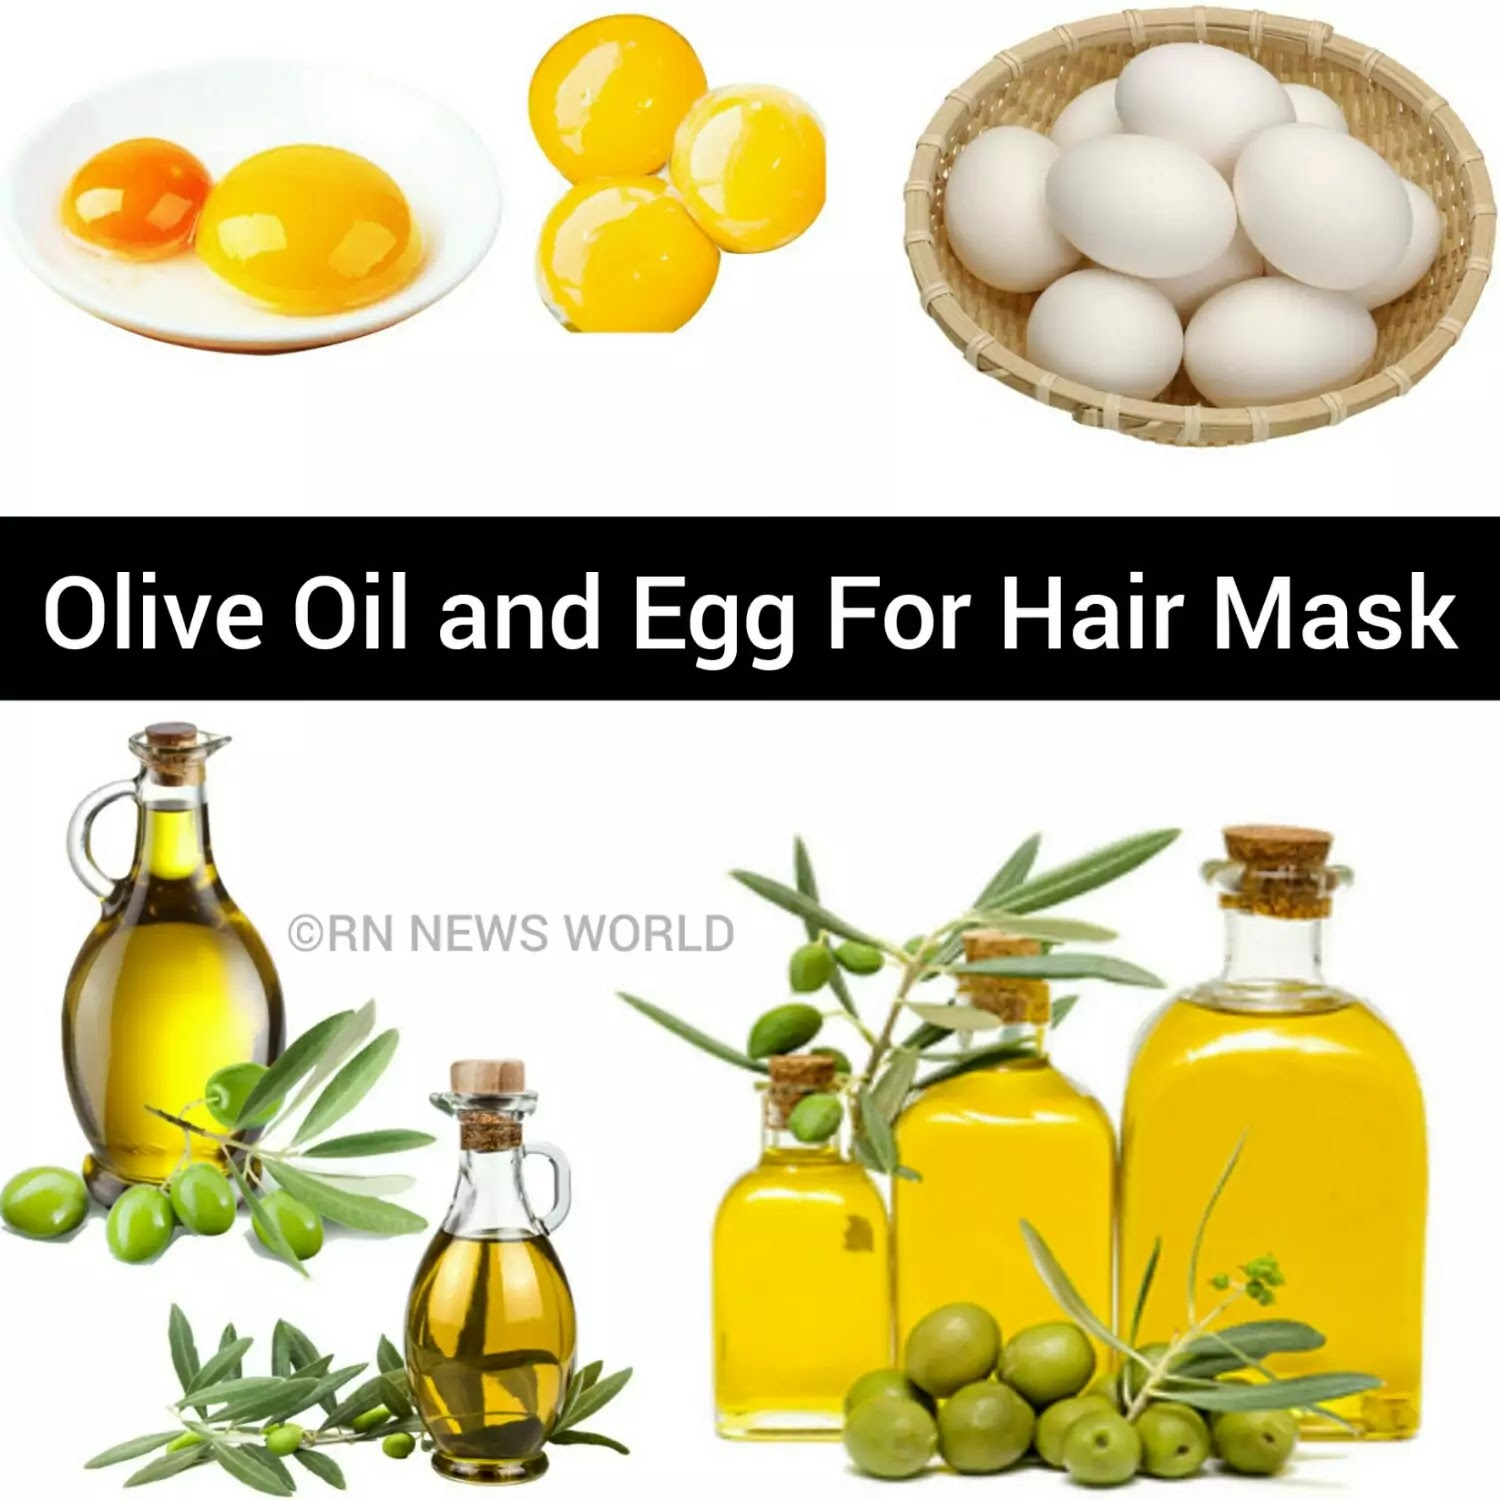 olive oil and egg hair mask benefits